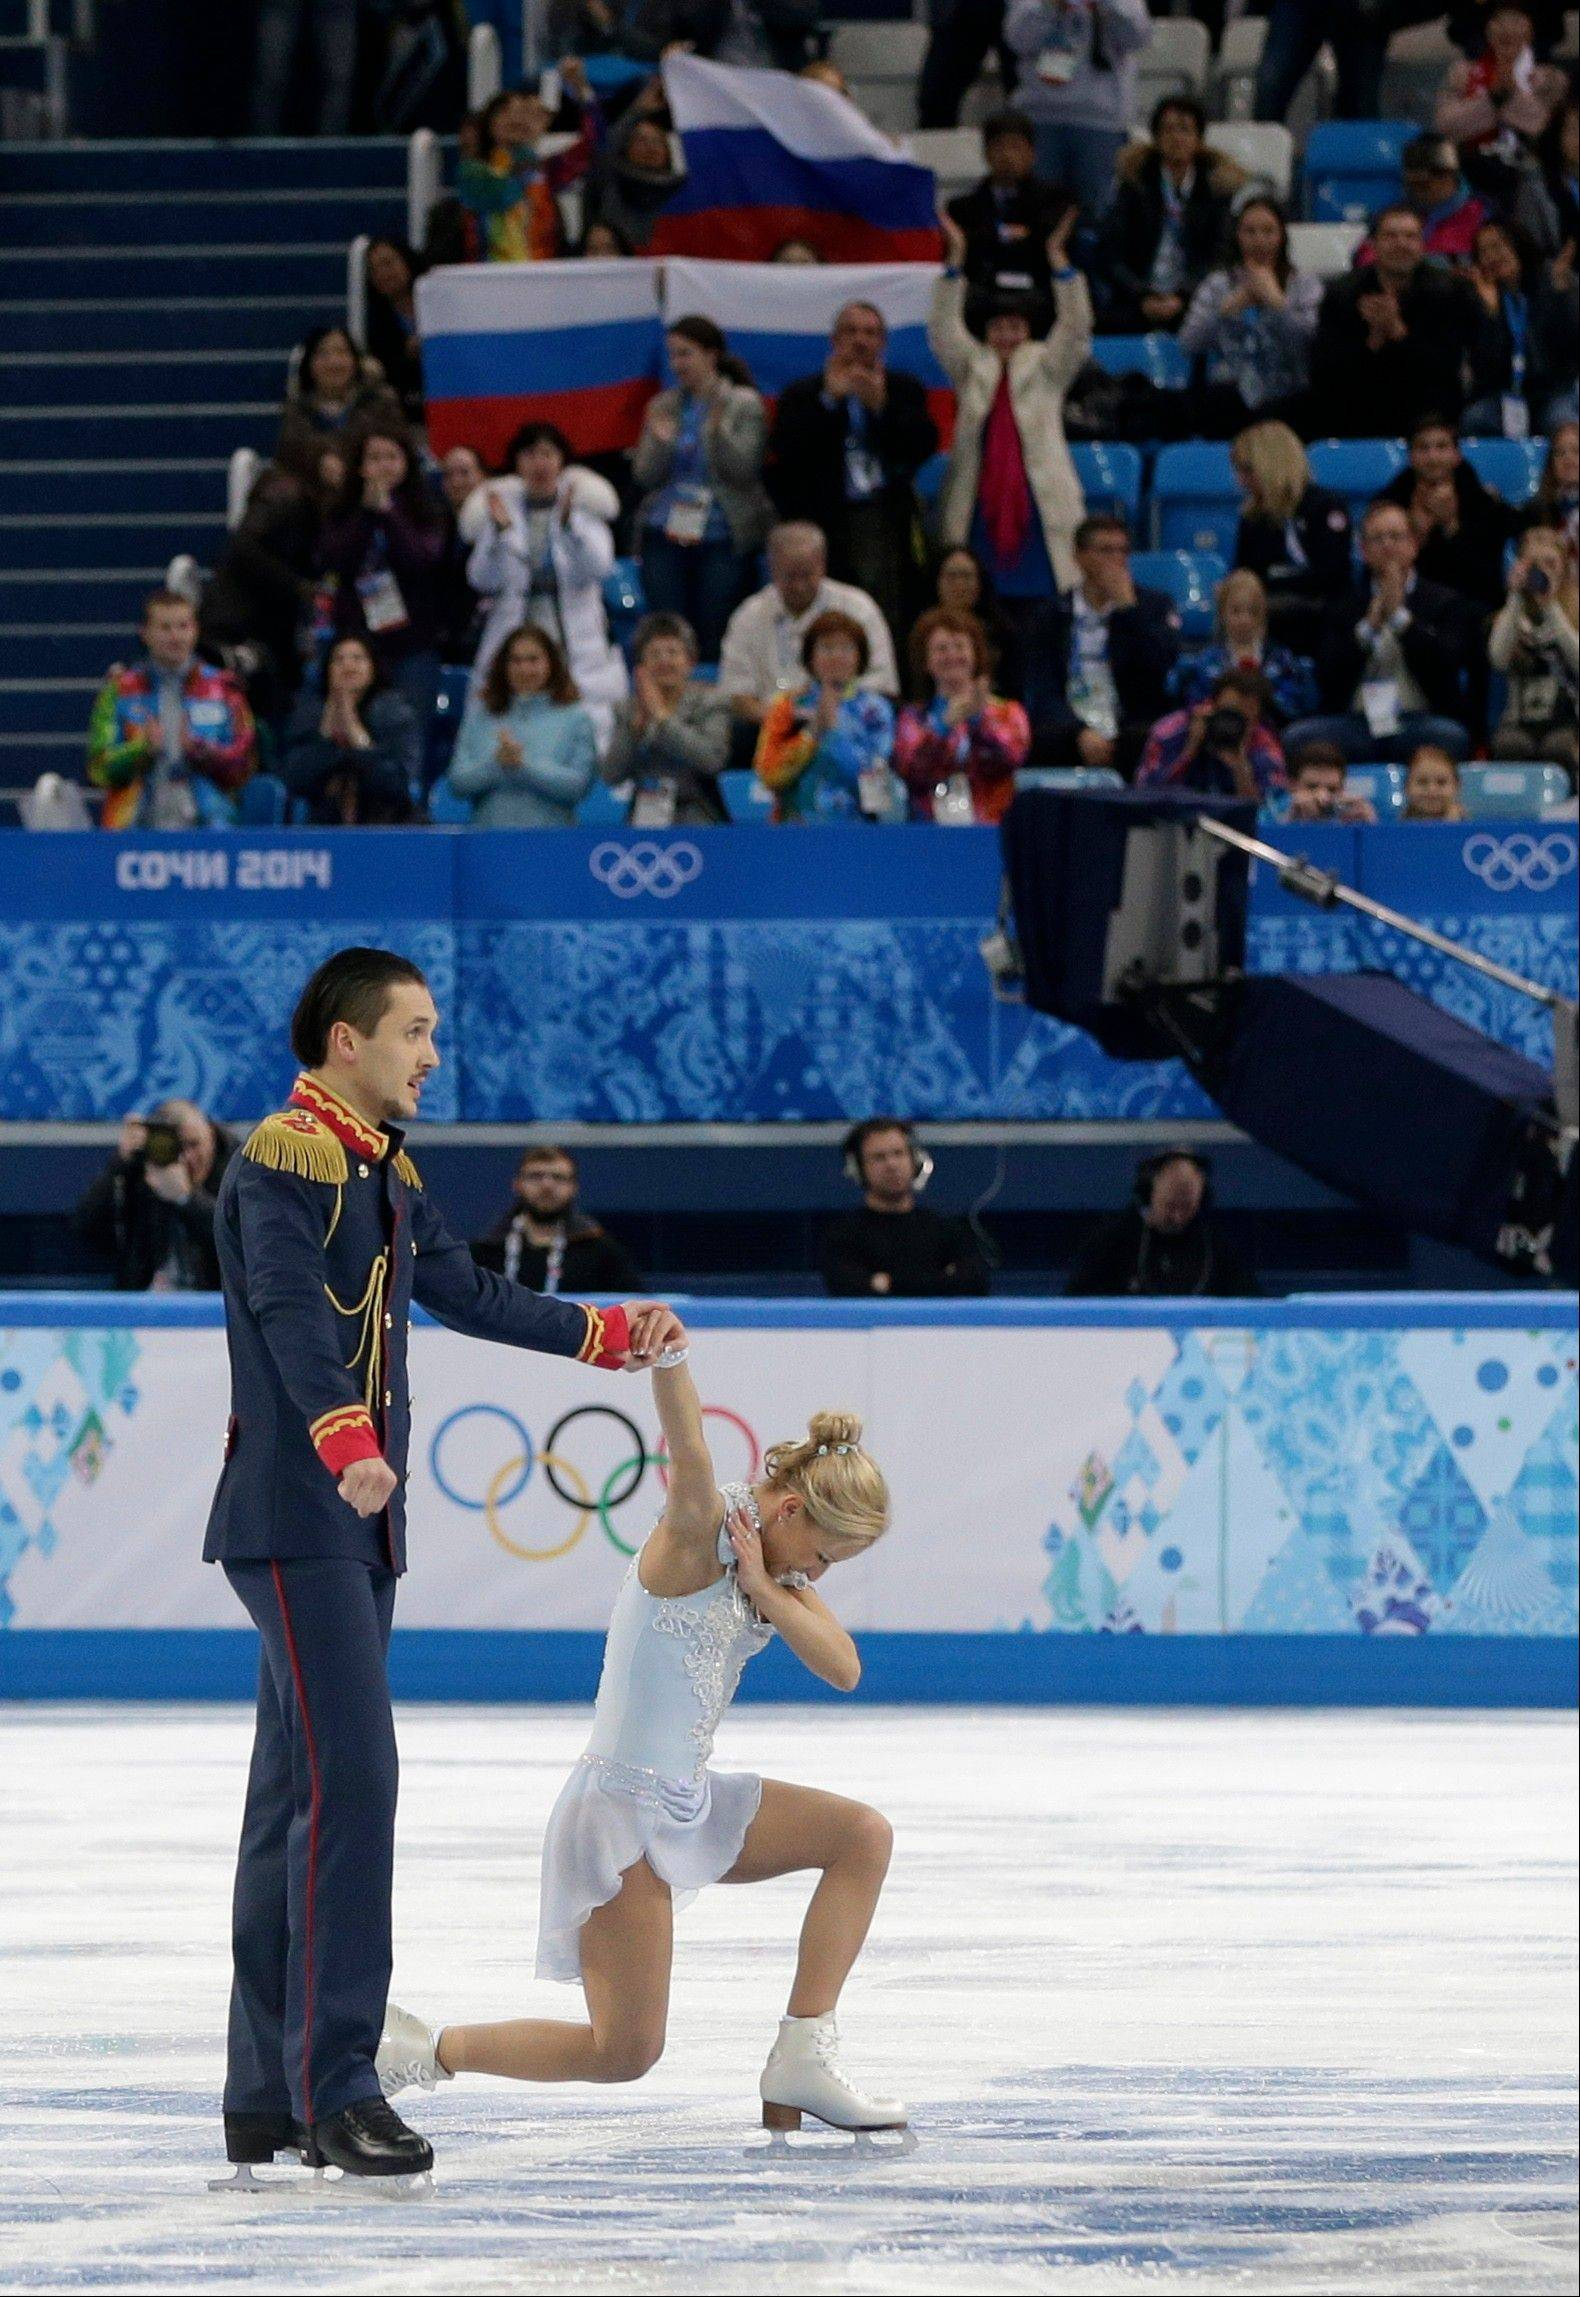 Tatiana Volosozhar and Maxim Trankov of Russia finish their routine in the team pairs short program figure skating competition at the Iceberg Skating Palace during the 2014 Winter Olympics.